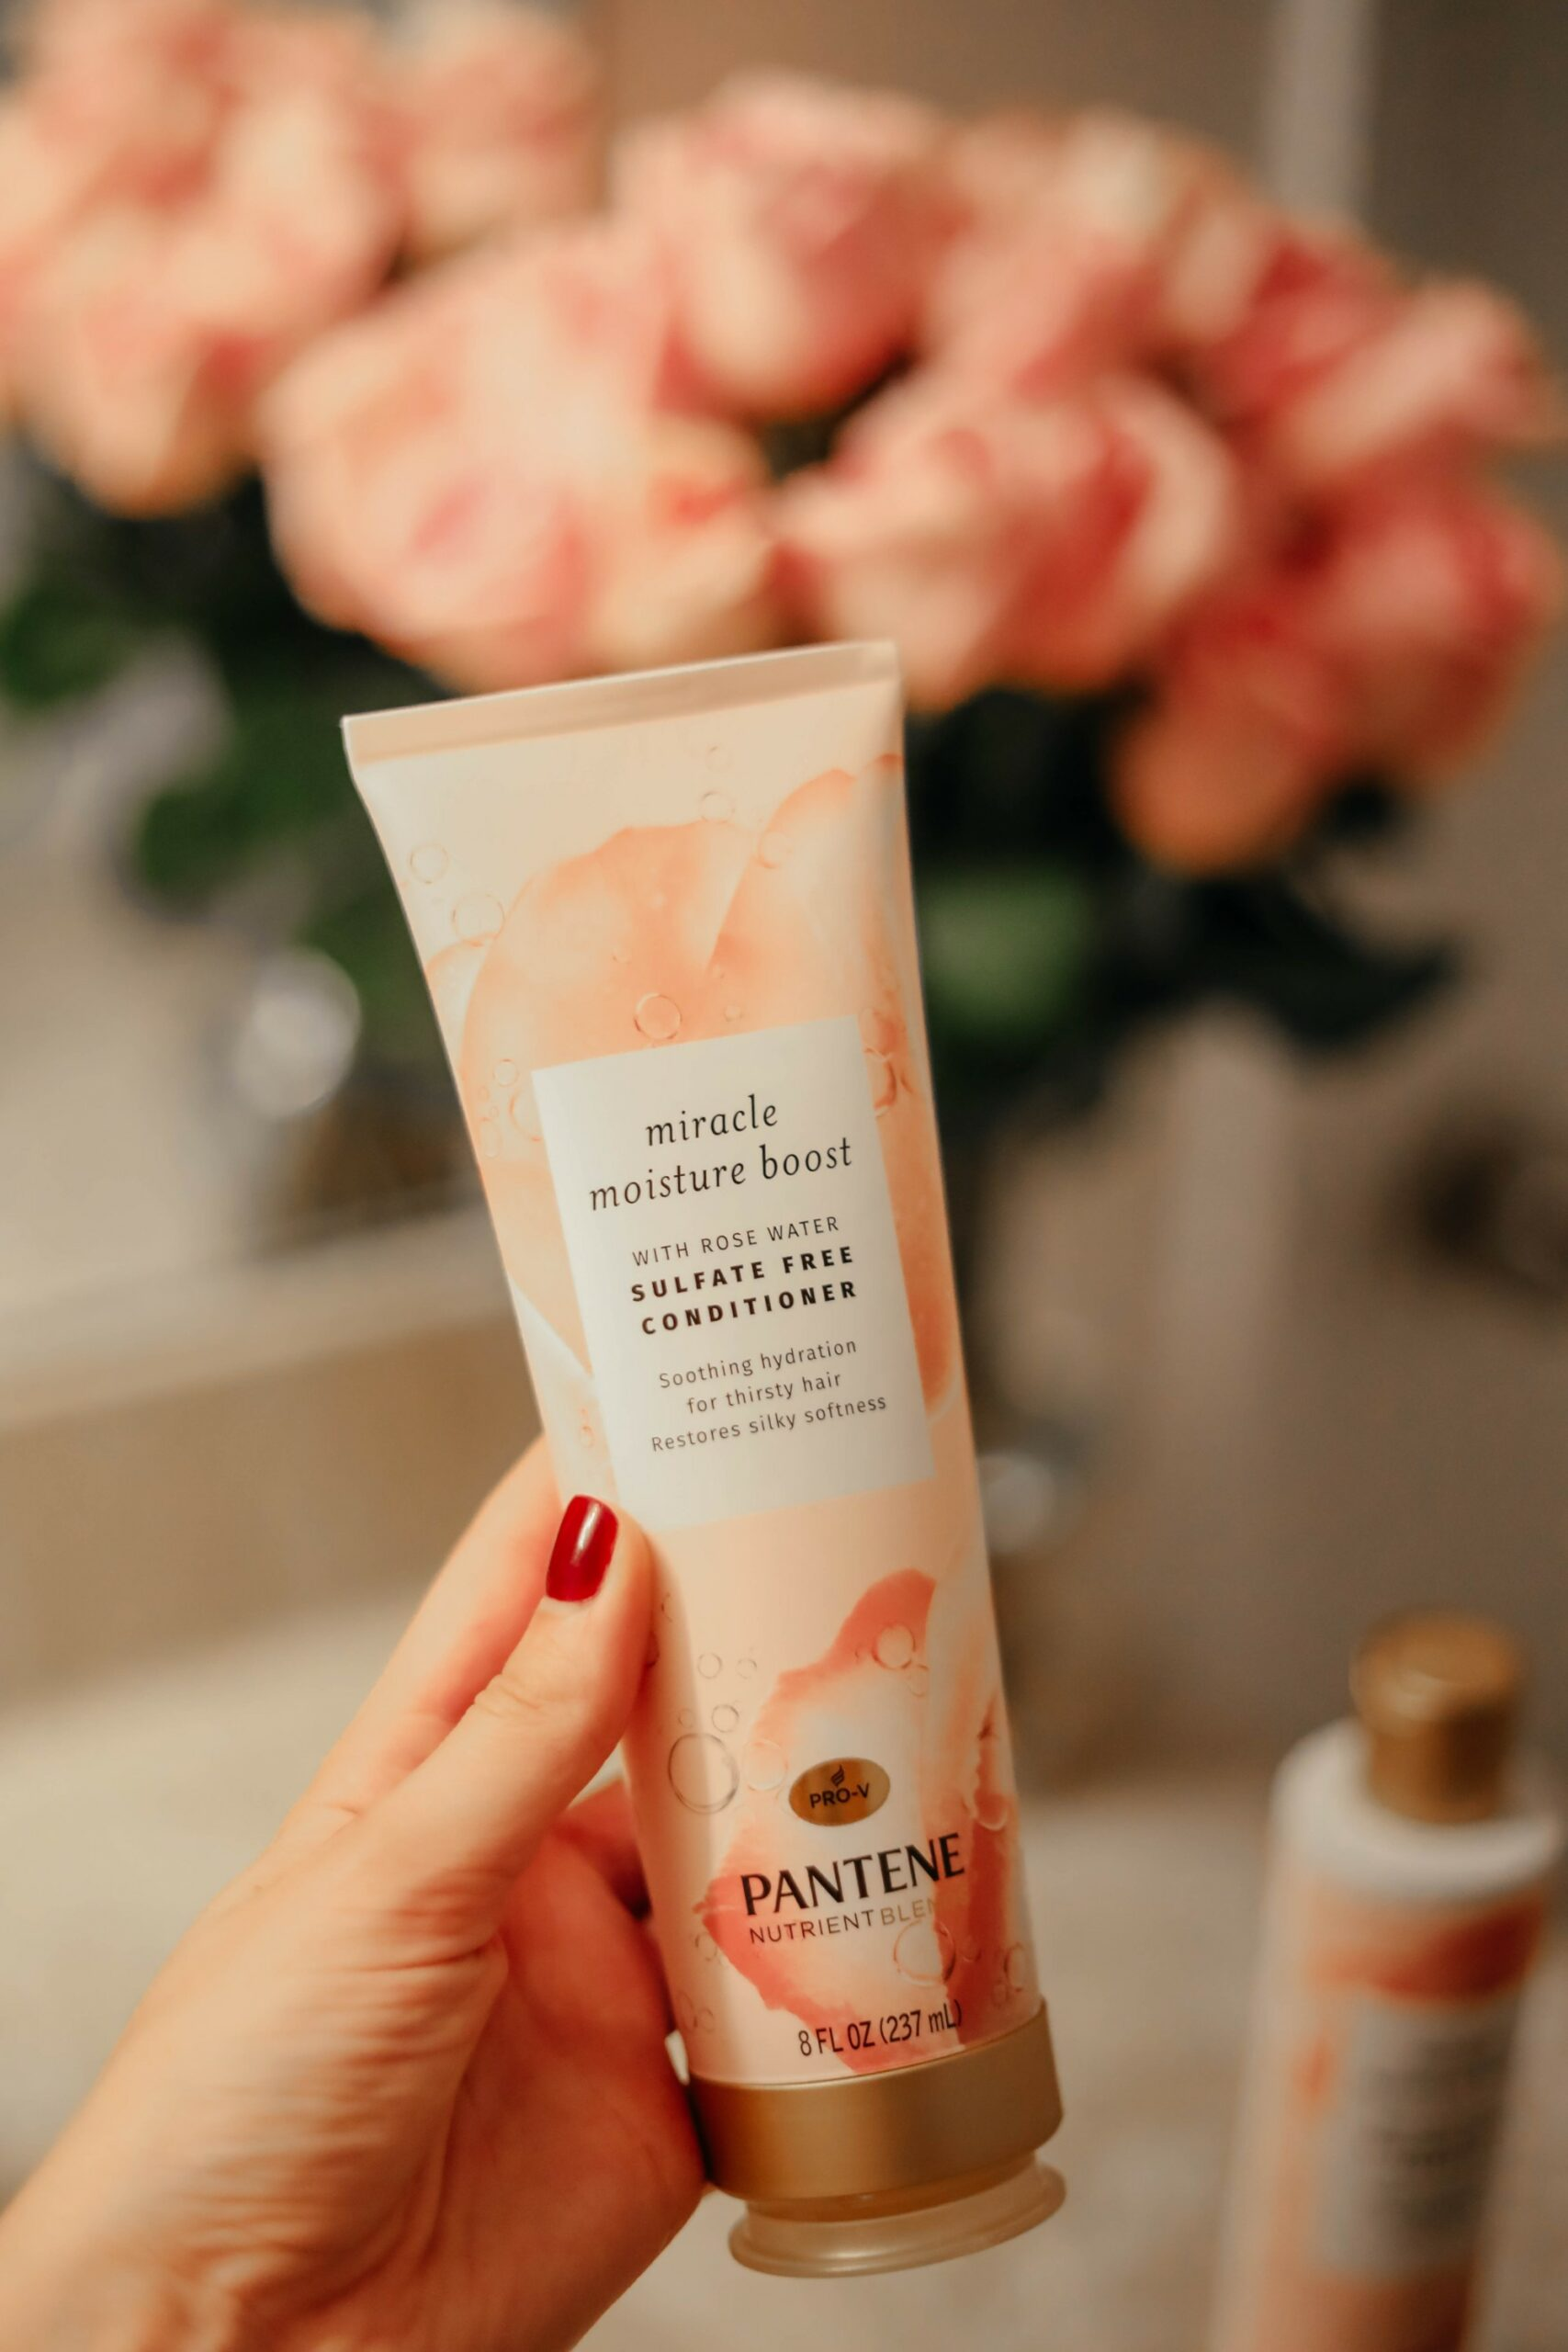 Review of Pantene Nutrient Blends Collection - on Coming Up Roses